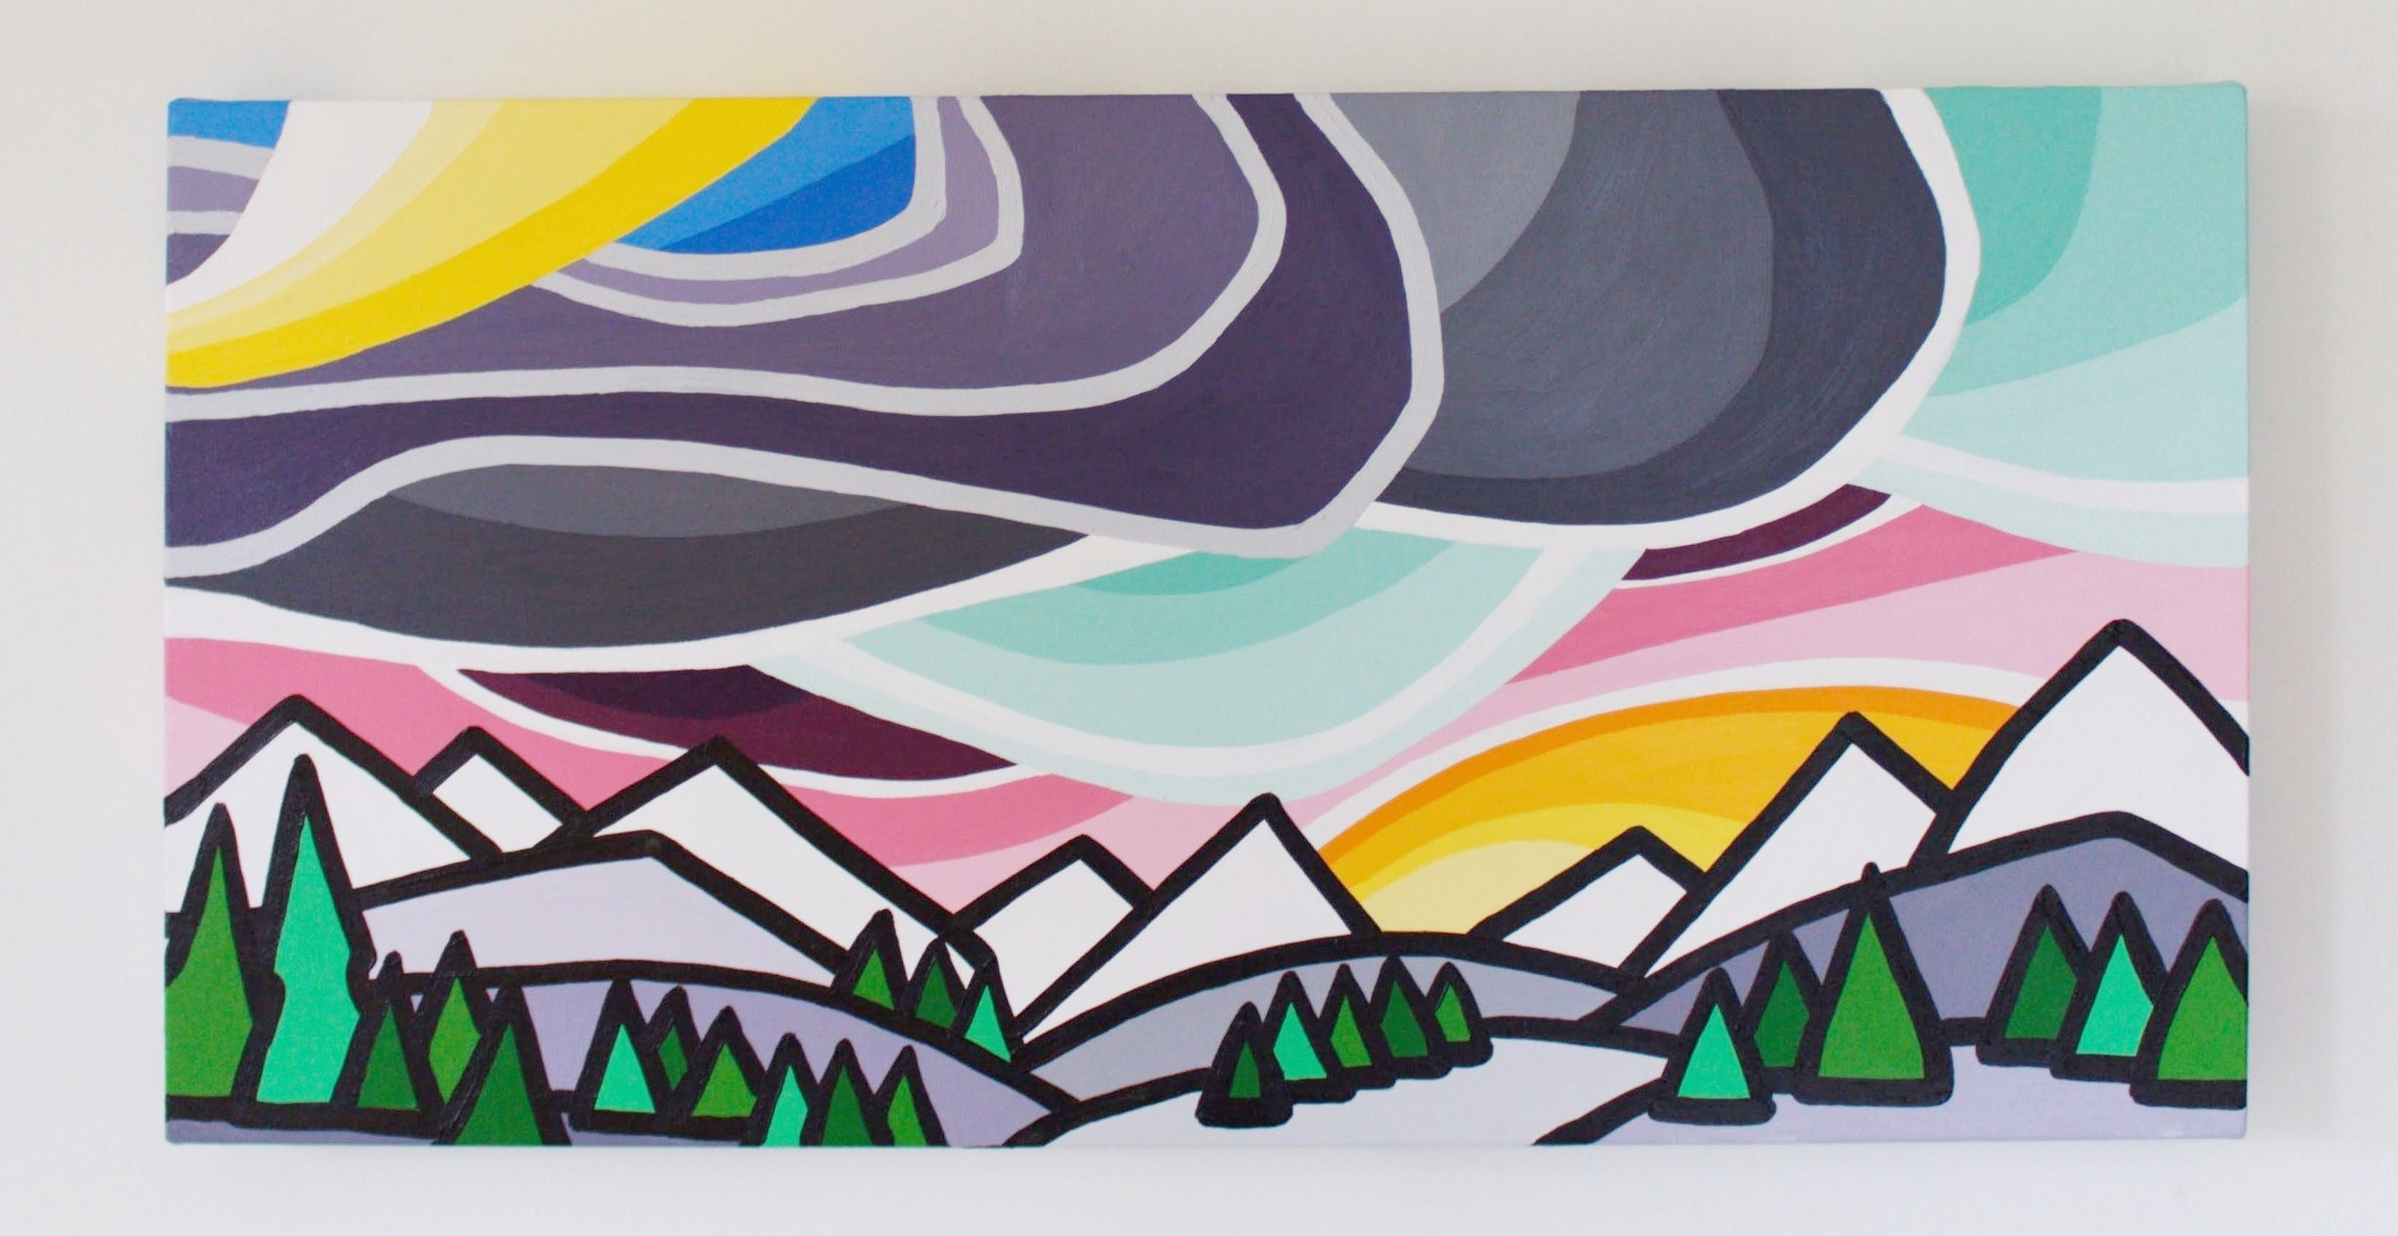 "Those Mountains - Size: 12"" x 24"" acrylic on canvasPrice: SOLD"